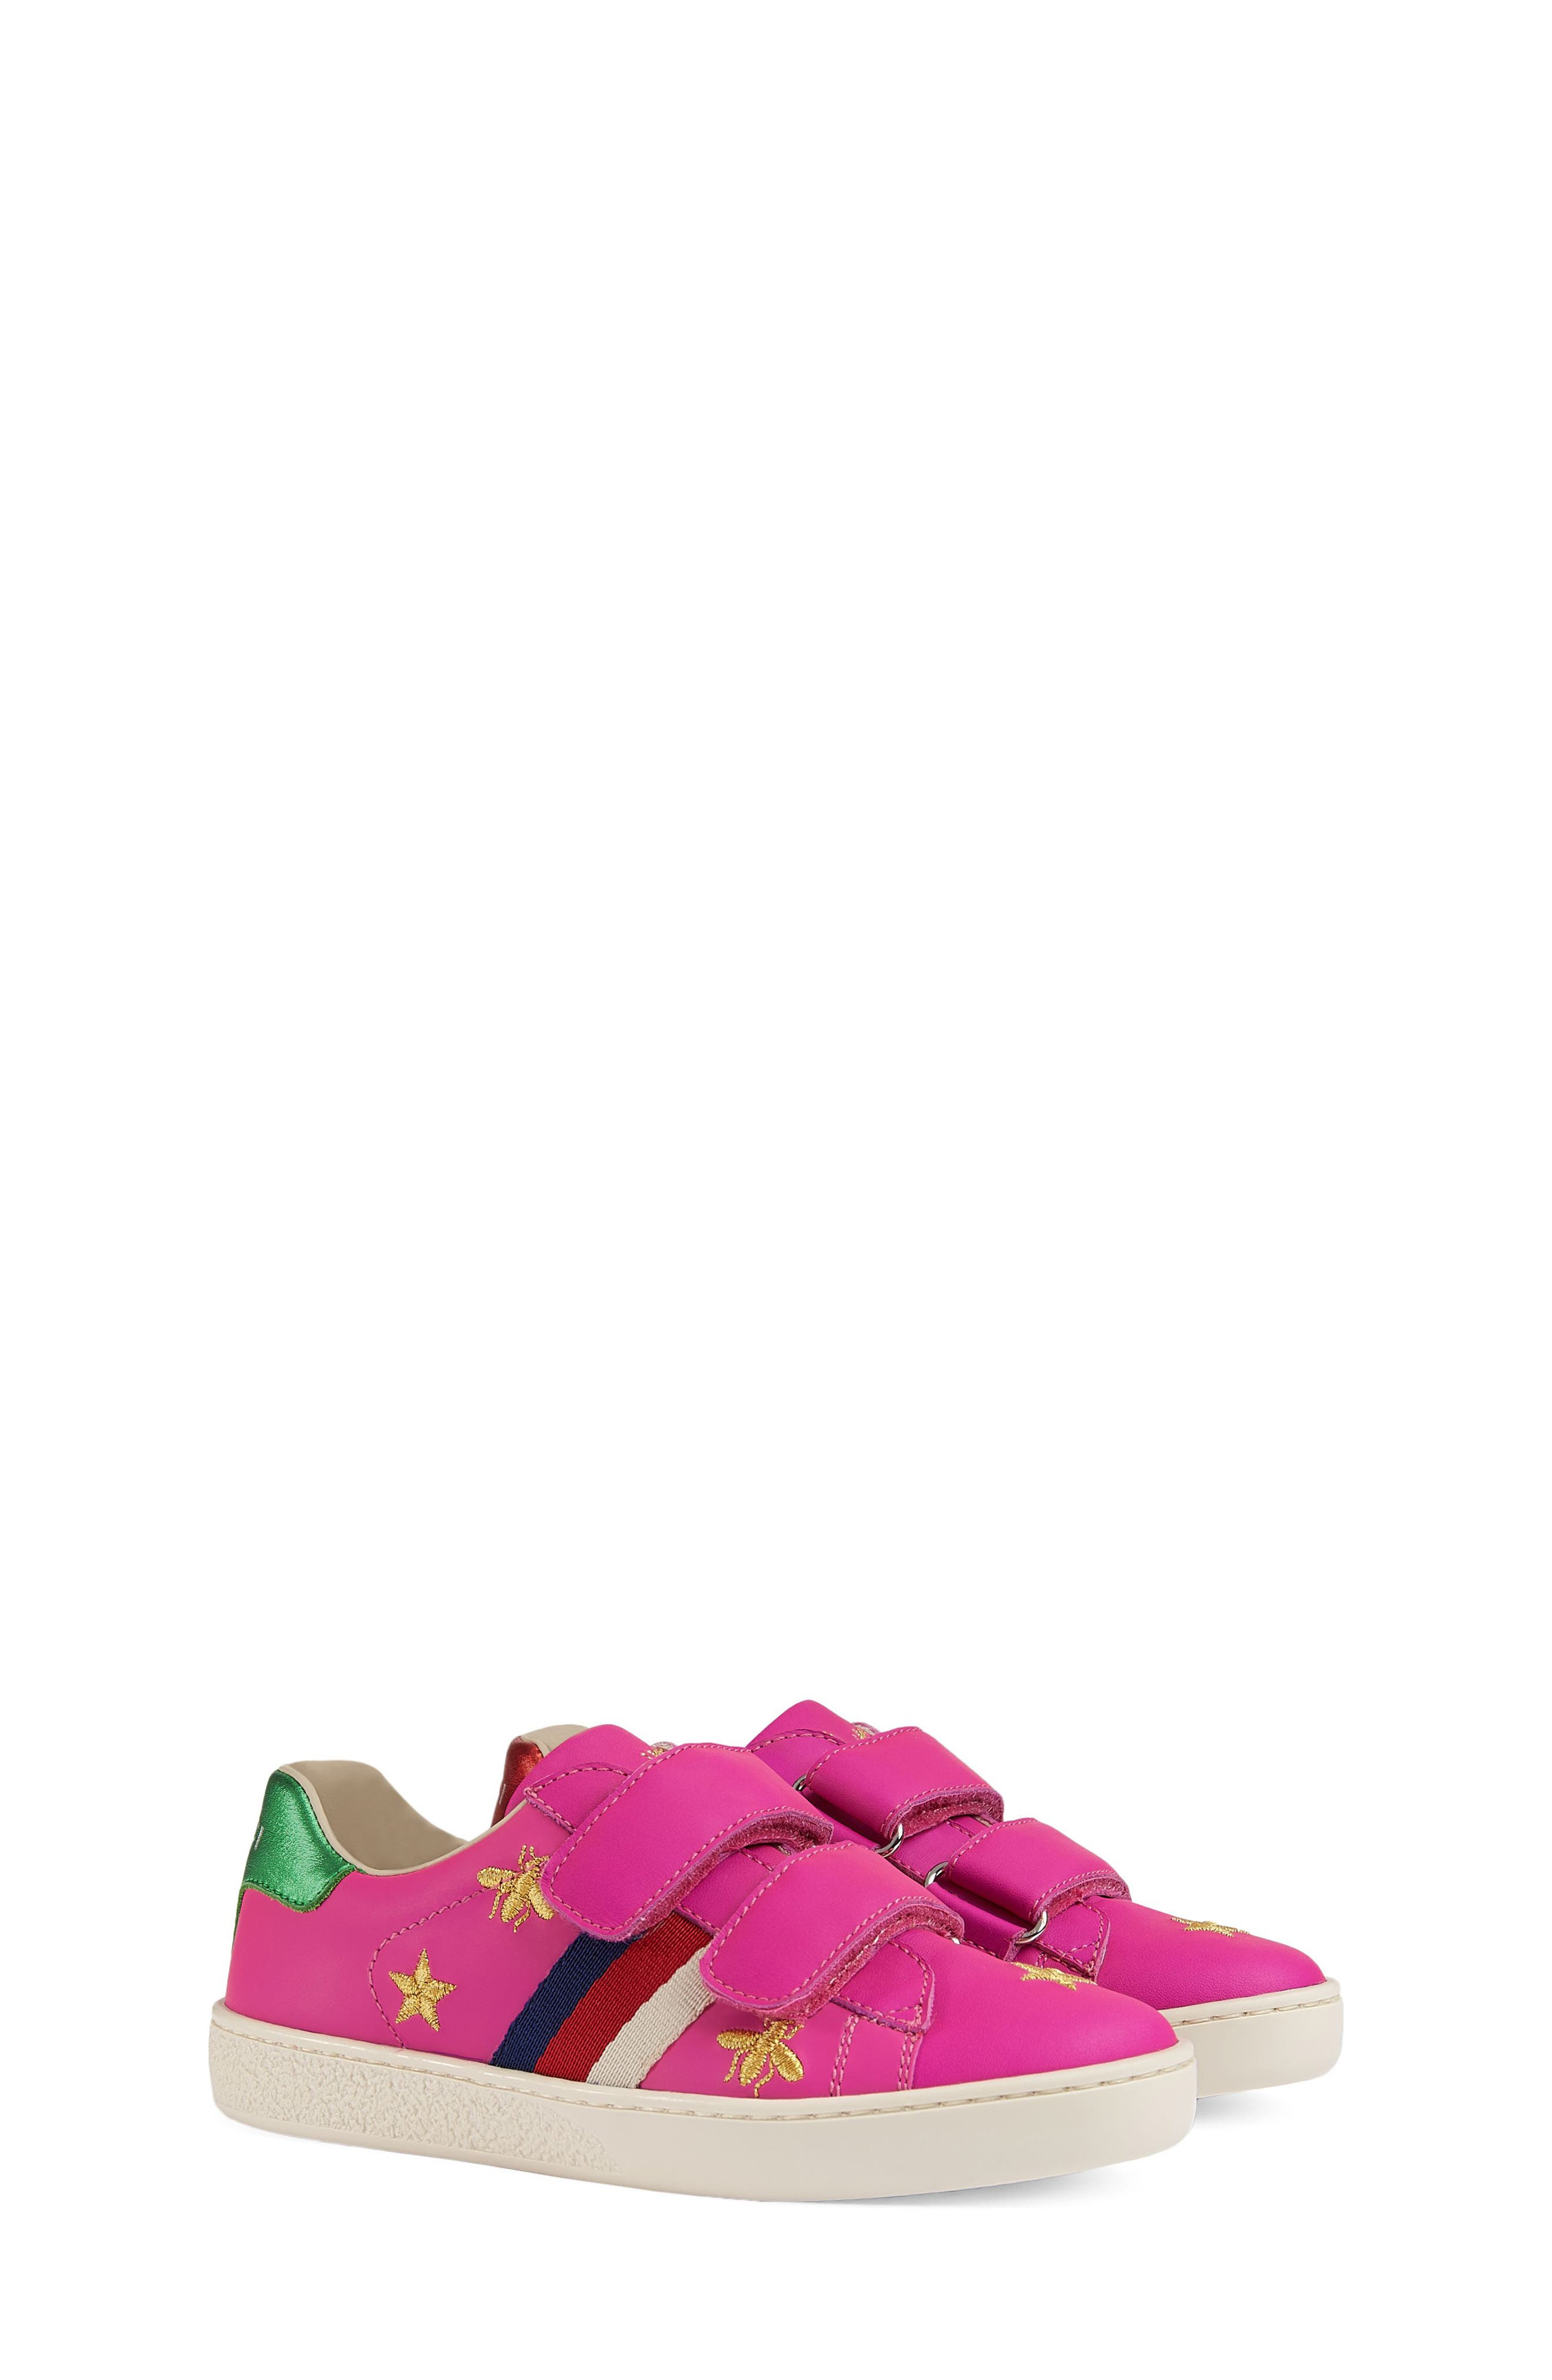 New Ace Embroidered Sneaker,                             Main thumbnail 1, color,                             PINK STAR